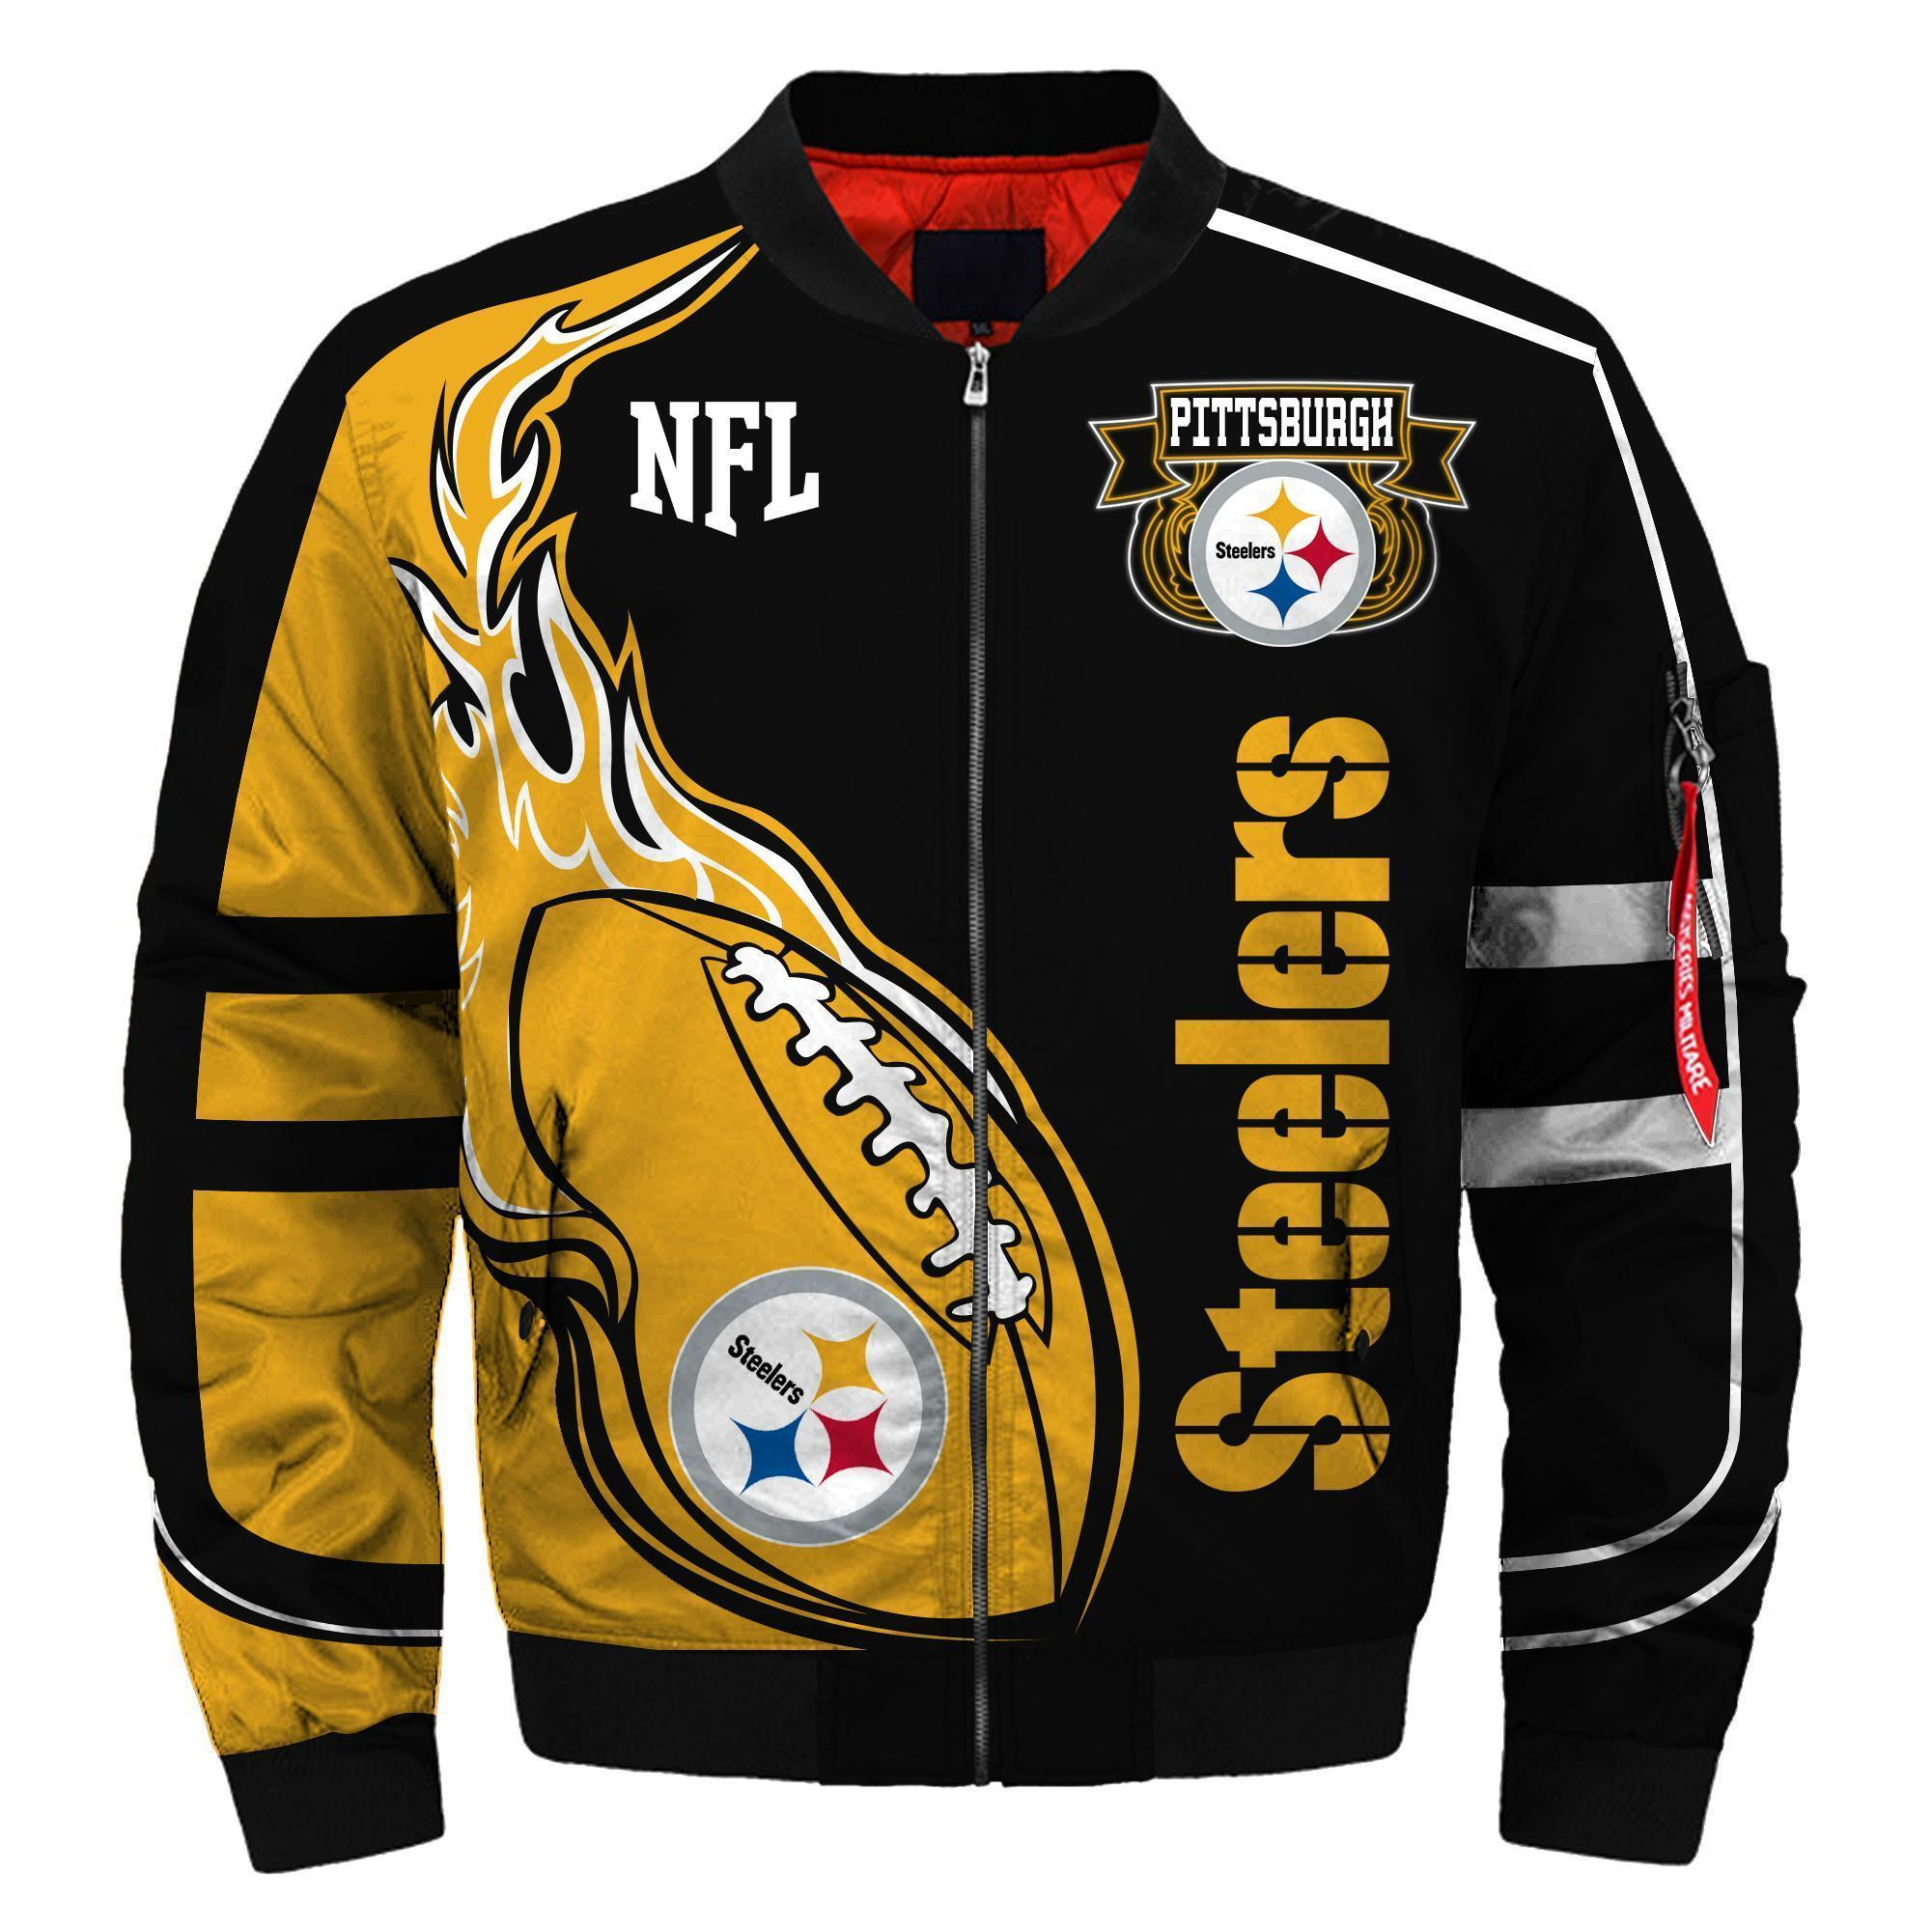 008 Nfl Pittsburgh Steelers Custom North Face Winter Jacket Bomer High Quality Plus Size Jacket